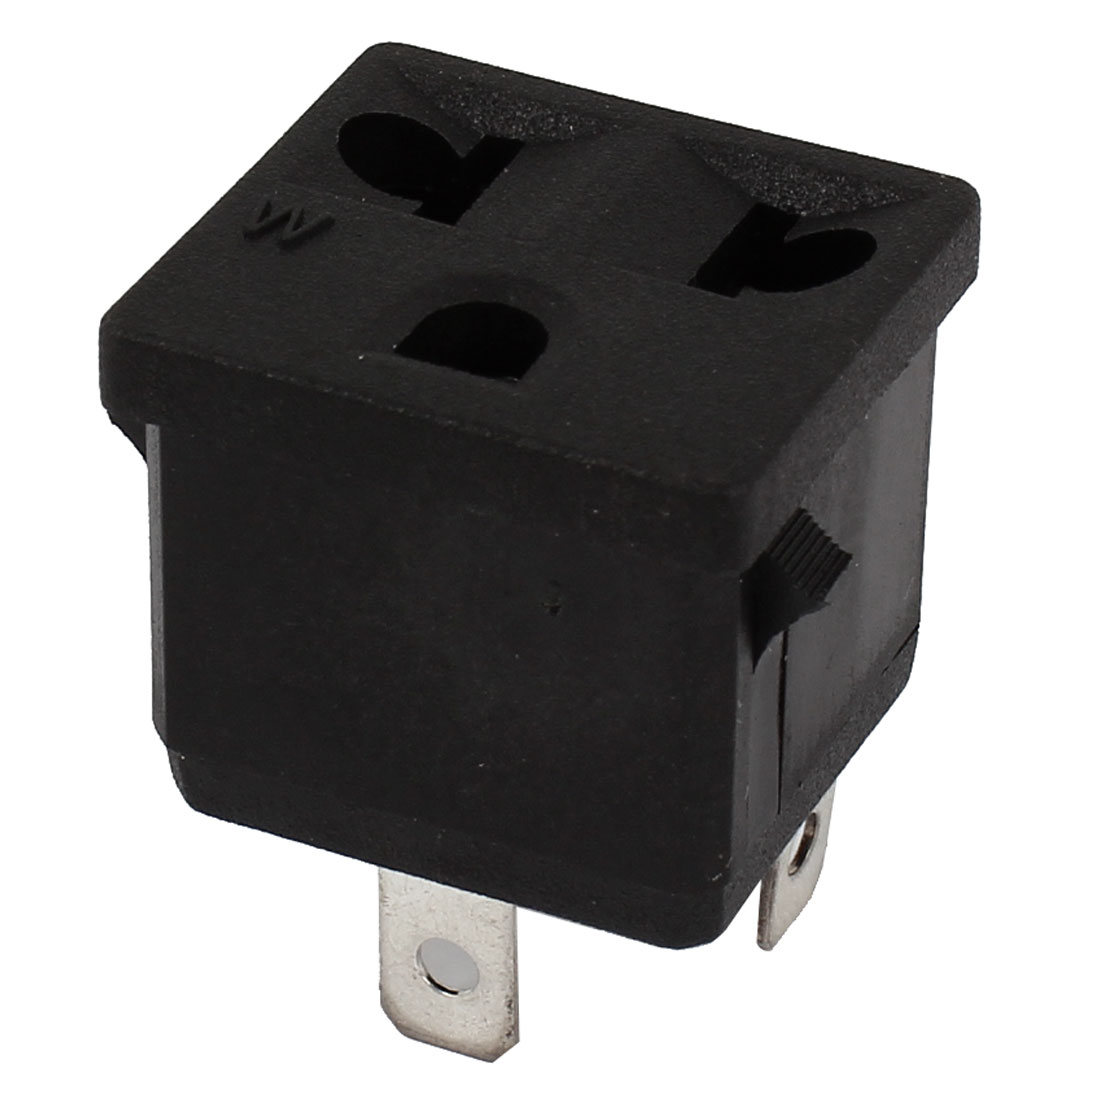 AC 125V/15A 250V/10A Female Power Socket for 3Pin US EU Plug